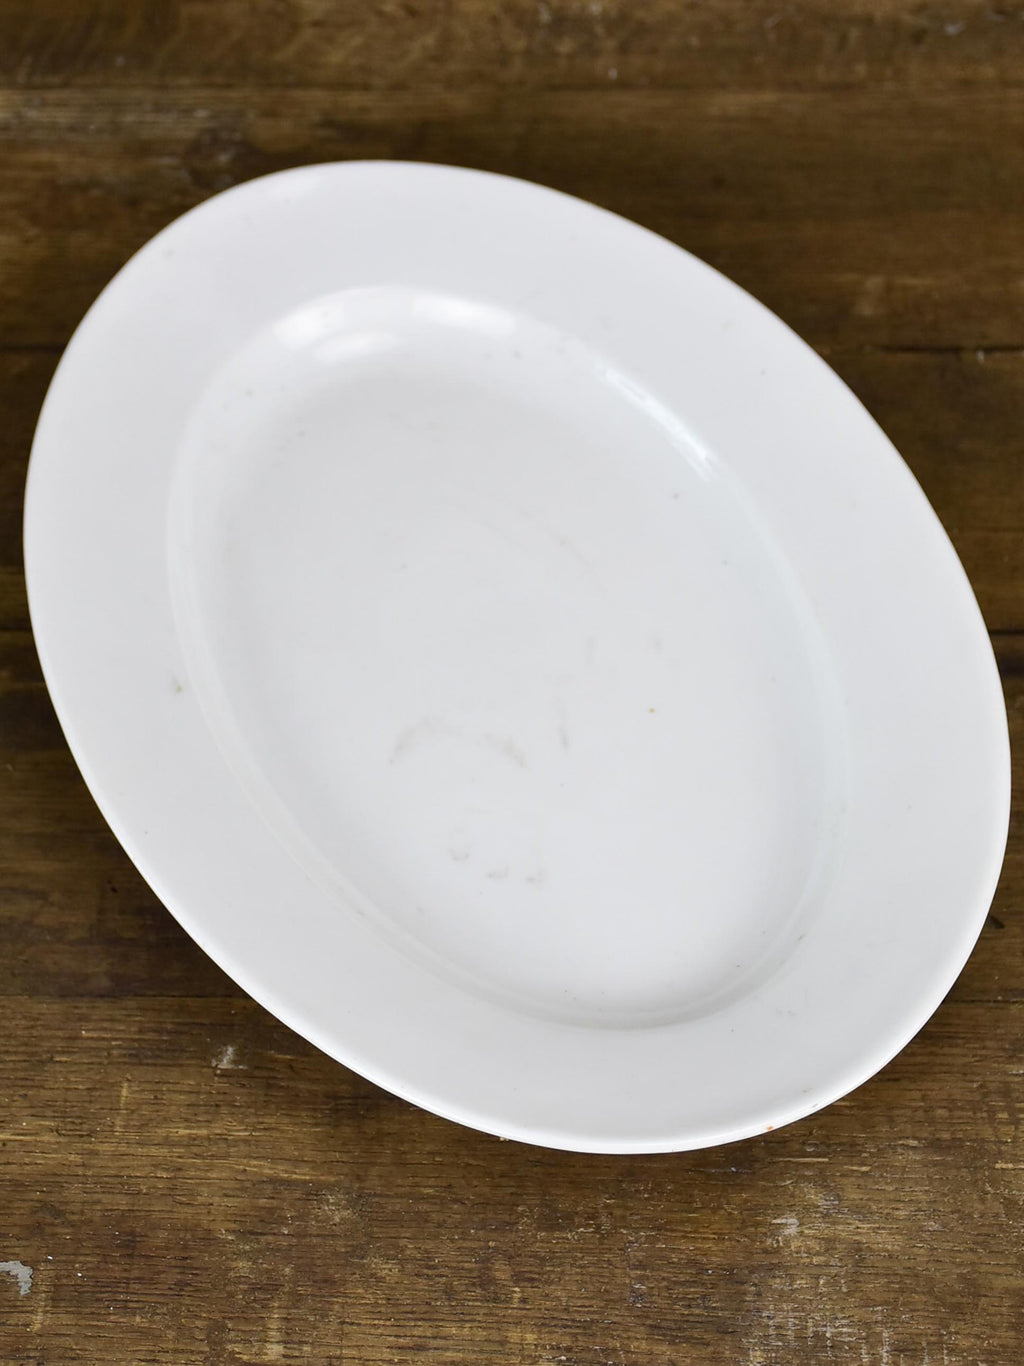 Late 19th Century ironstone platter - white